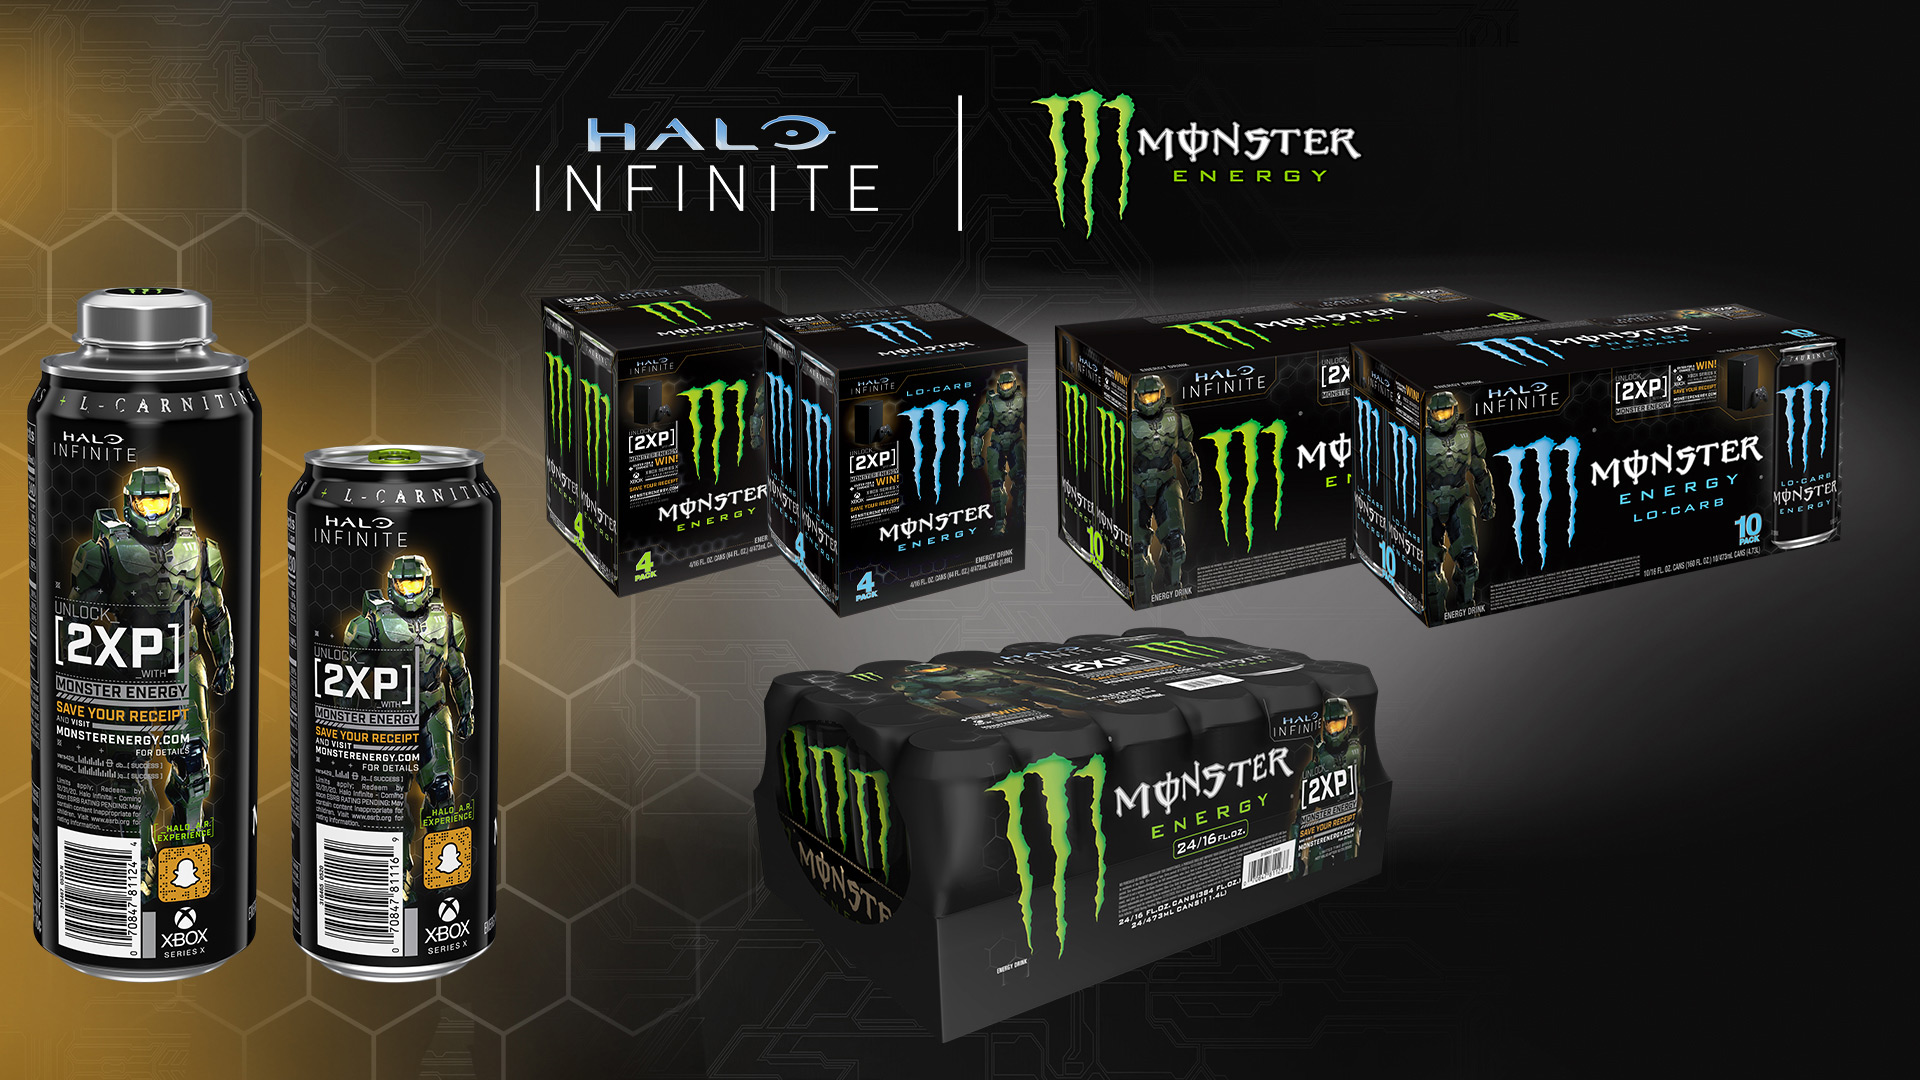 Halo Infinite might be delayed, but its Monster Energy XP boosts are not